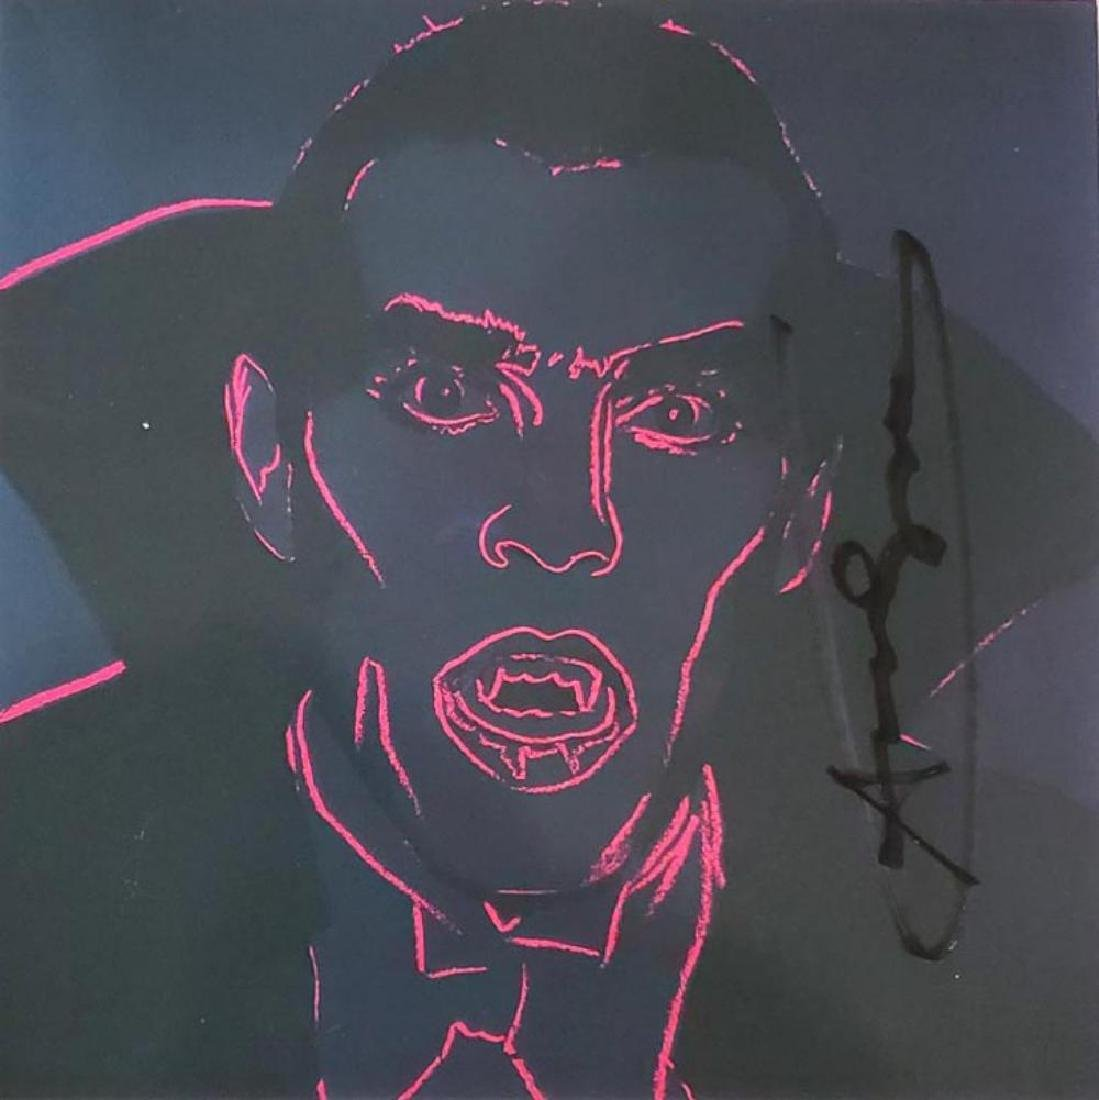 Andy Warhol Hand Signed Color Lithograph (Invitation)